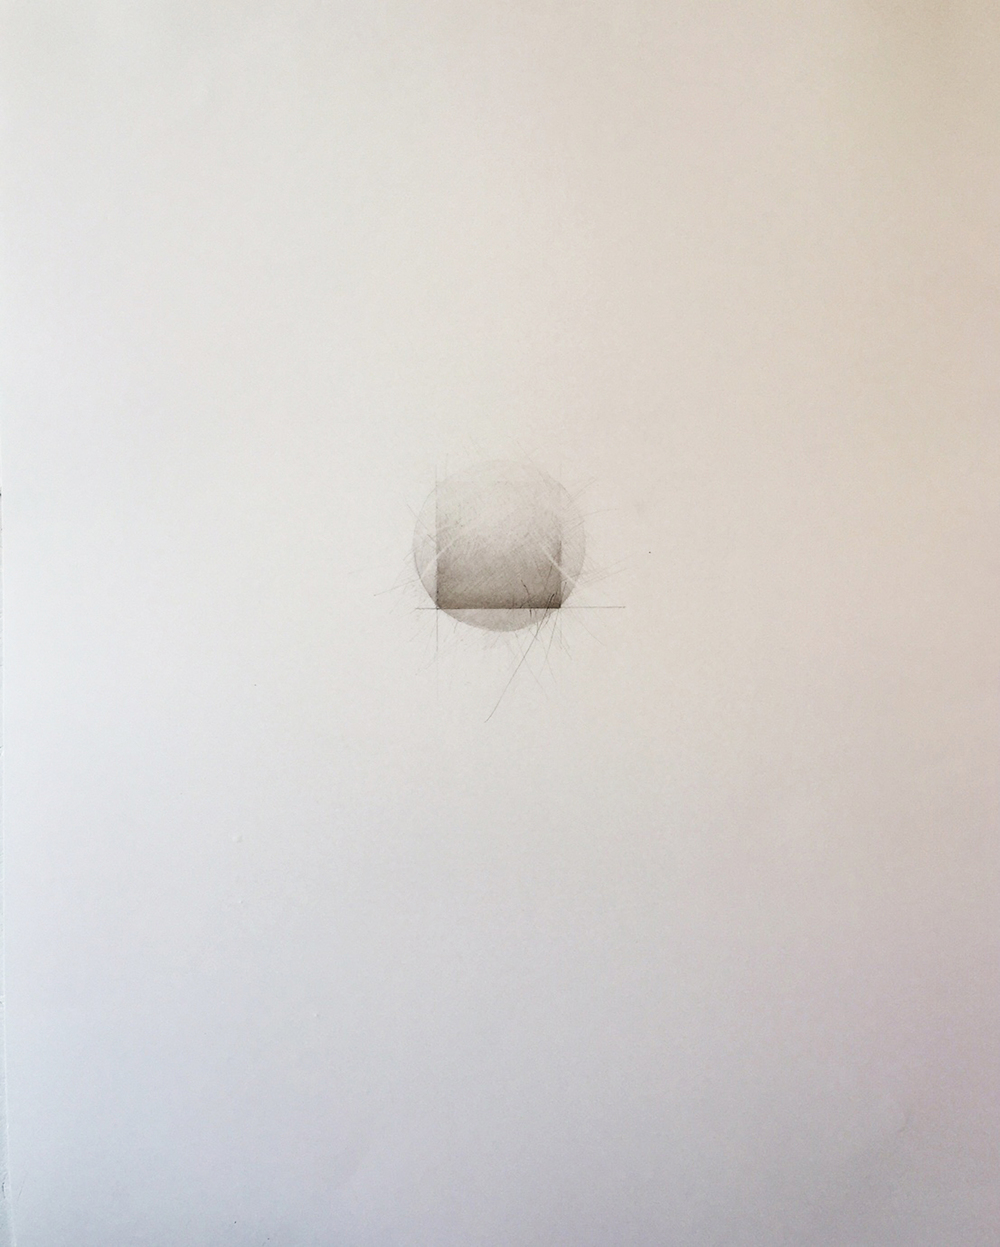 Ghidini, Grace 2, 2015, graphite and mica dust on paper, 28 1/2 x 22 1/2 inches